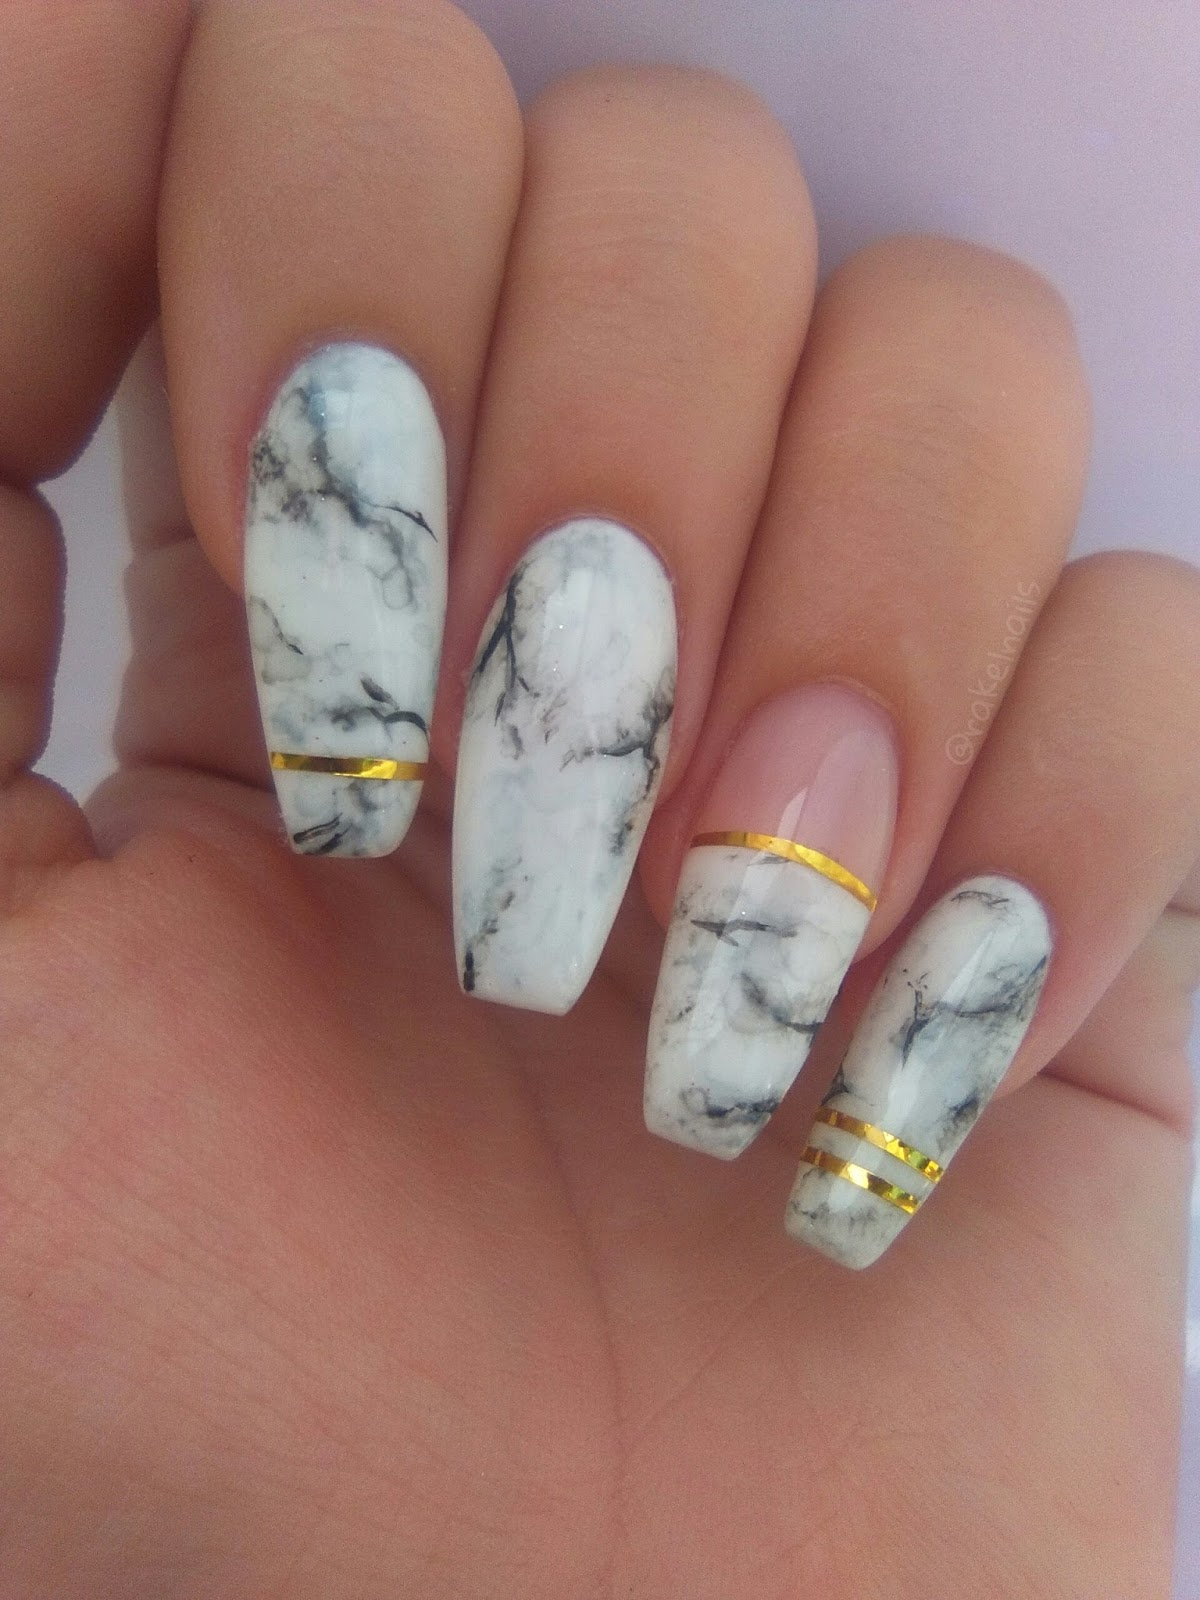 Rakel nails ❁: Uñas de gel coffin + nail art efecto mármol ...